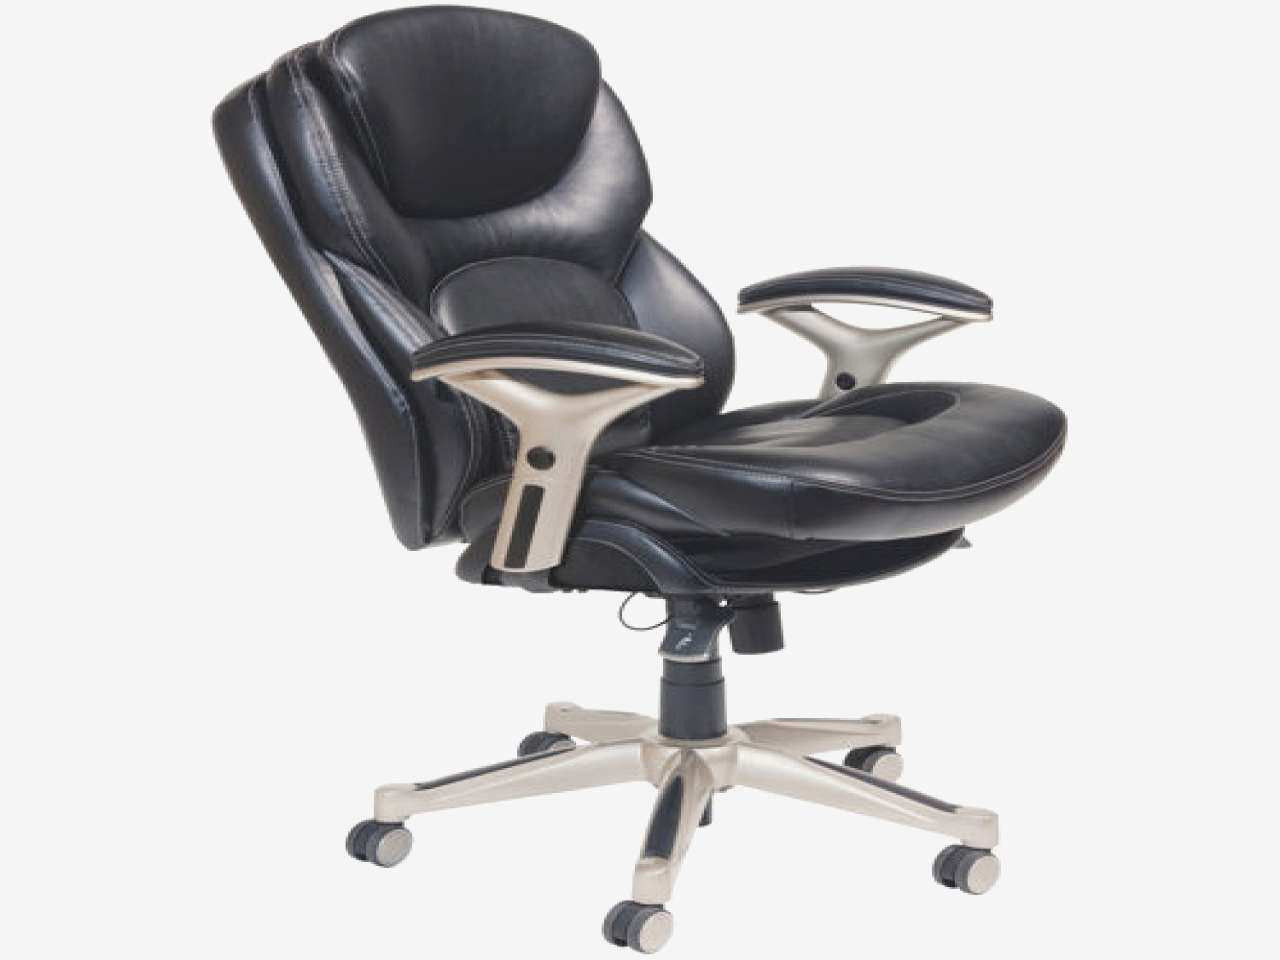 Best ideas about Office Chair Sale . Save or Pin Costco fice Chairs Sale Incredible Costco fice Now.